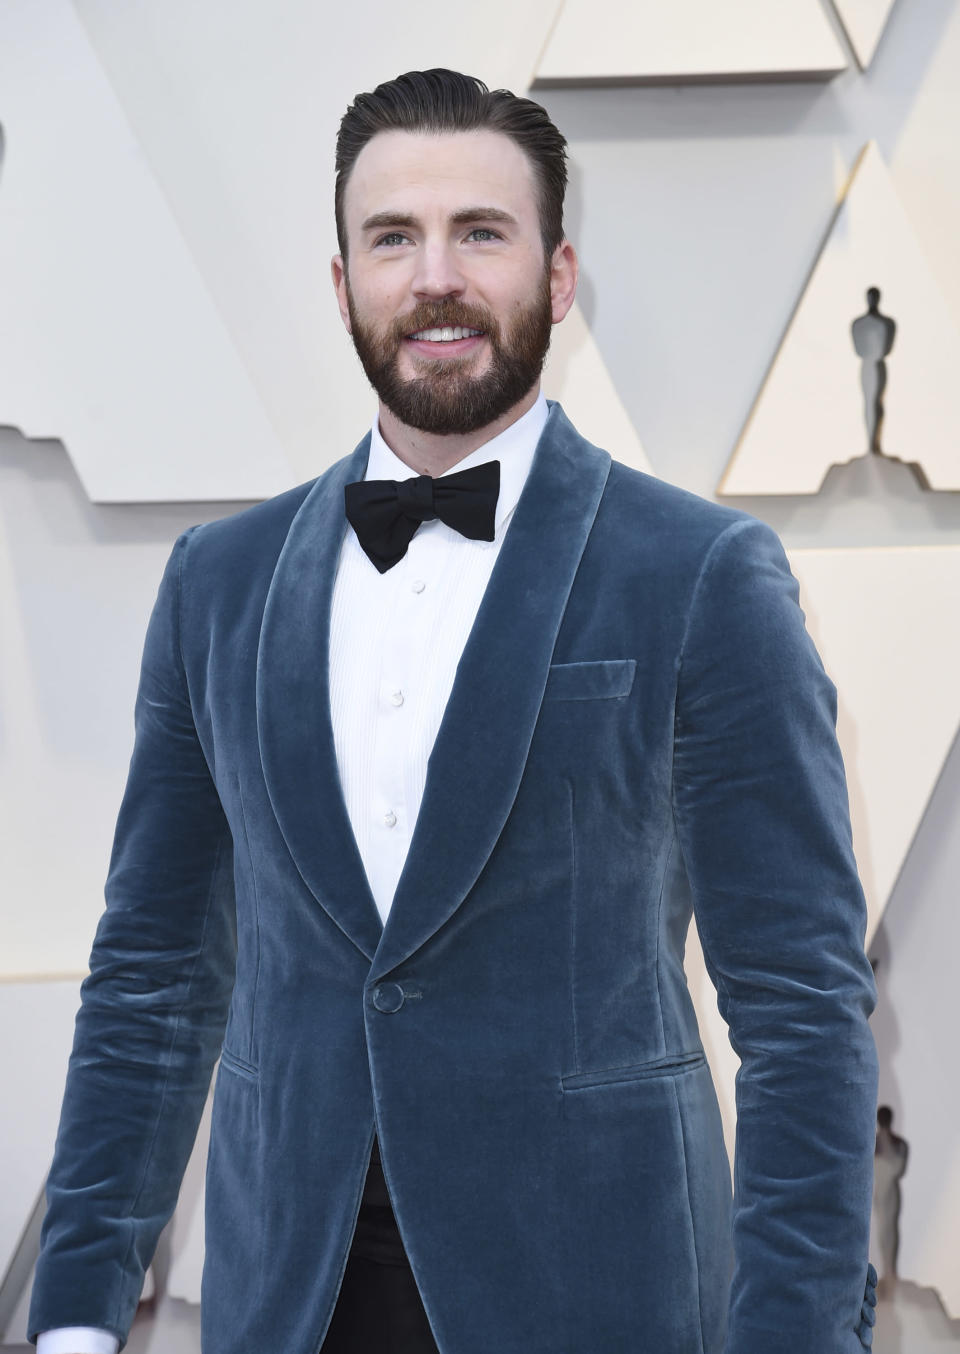 Chris Evans arrives at the Oscars on Sunday, Feb. 24, 2019, at the Dolby Theatre in Los Angeles. (Photo by Richard Shotwell/Invision/AP)